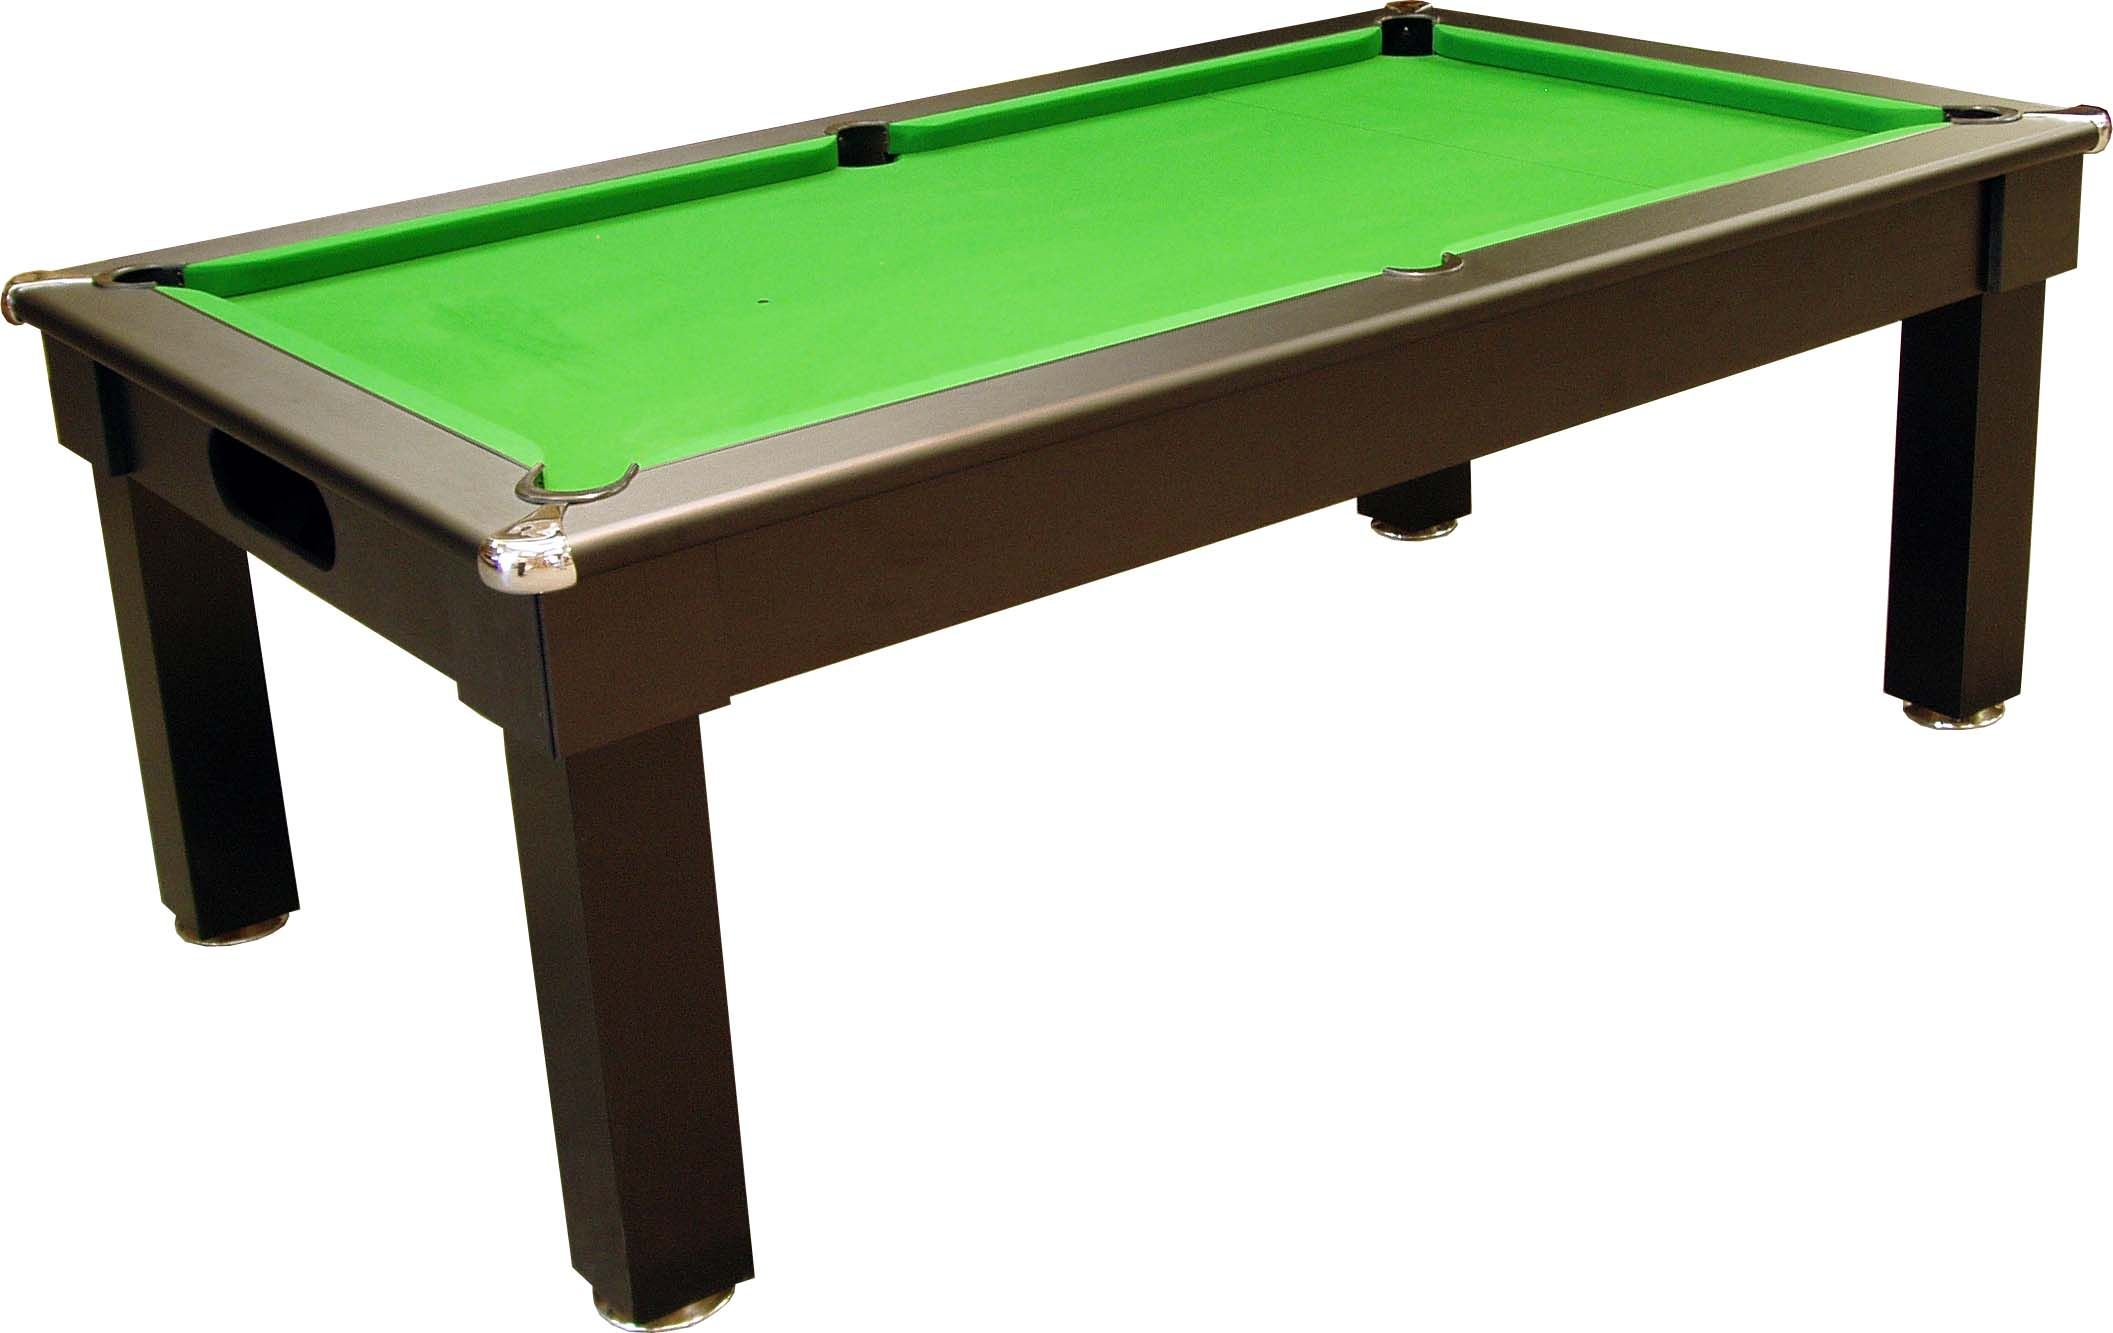 Signature Yale American Pool Dining Table 7ft Free